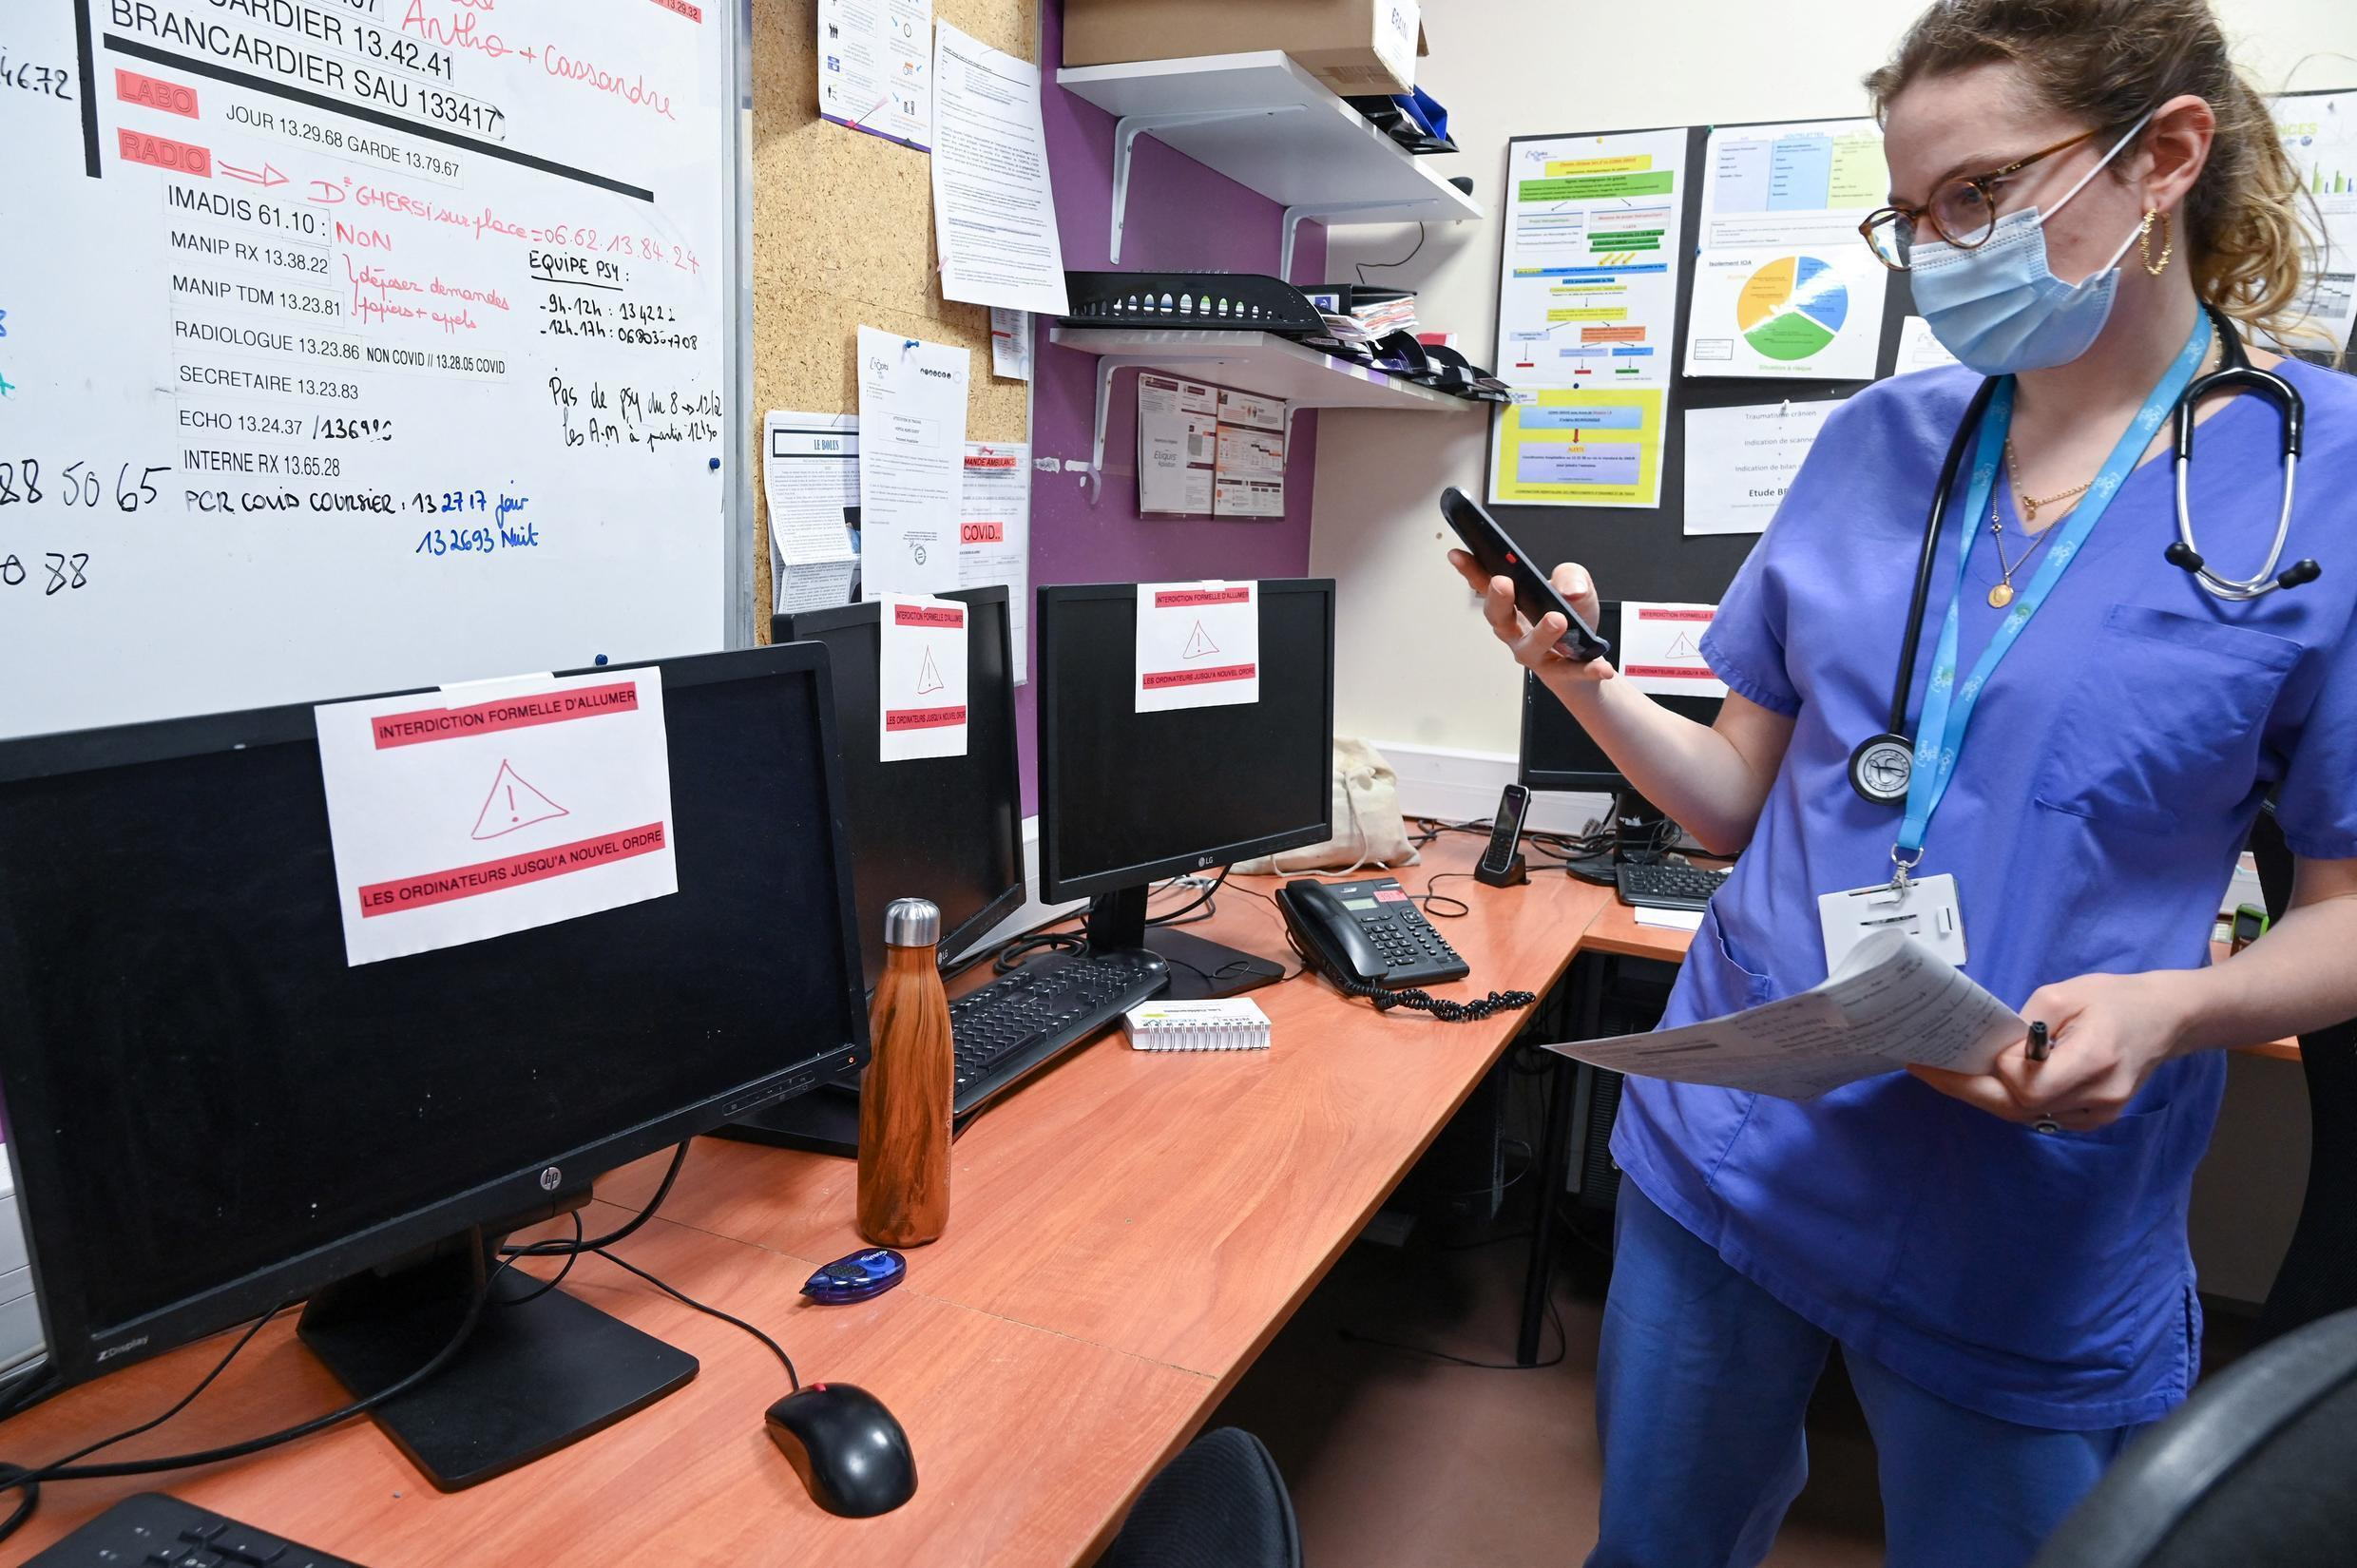 A nurse stands in front of out-of-service computers following a cyber attack on Villefranche-sur-Saône's hospital complex in eastern France on February 16, 2021.